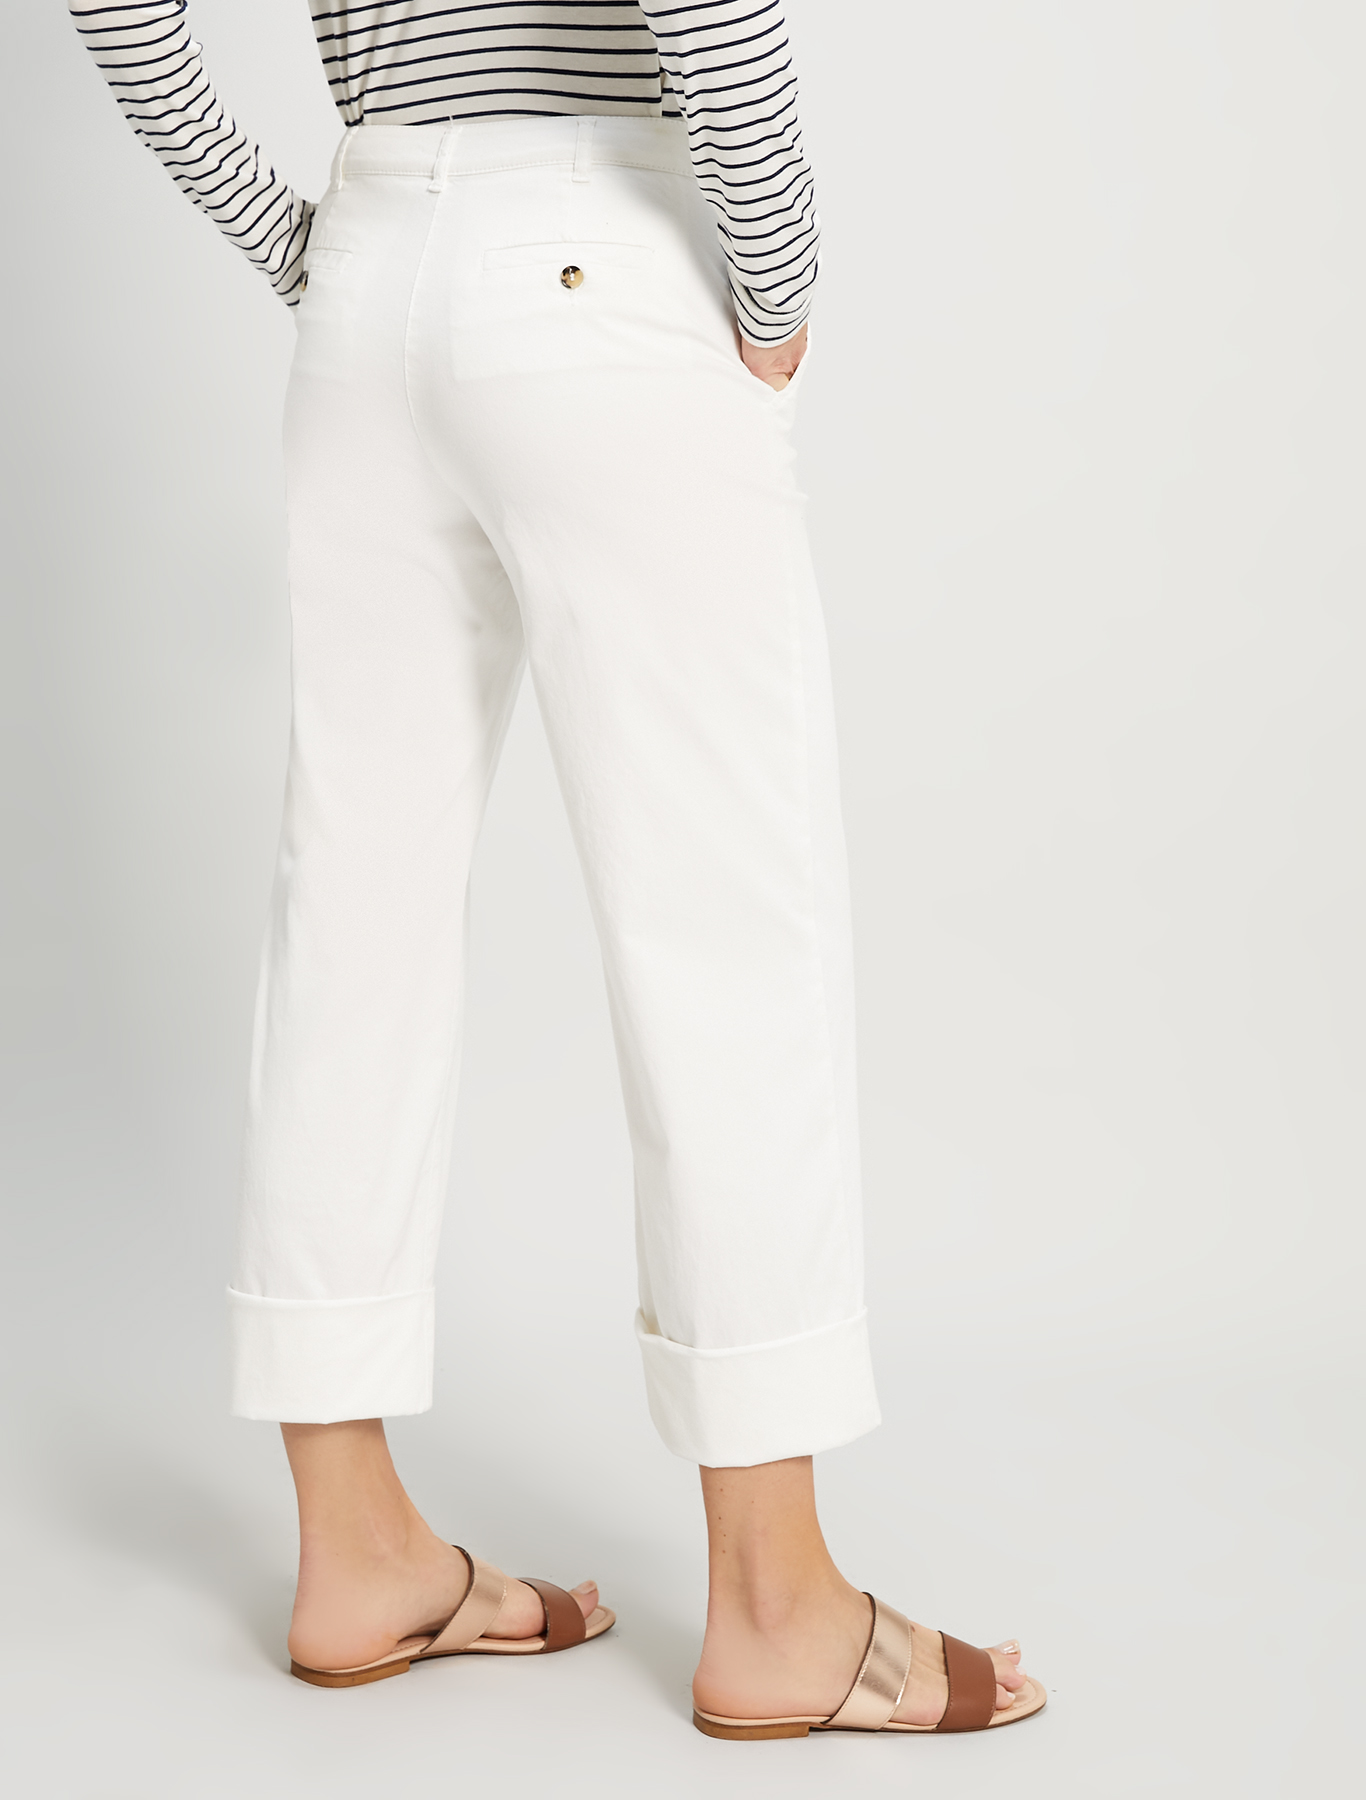 Piqué cotton trousers - ivory - pennyblack